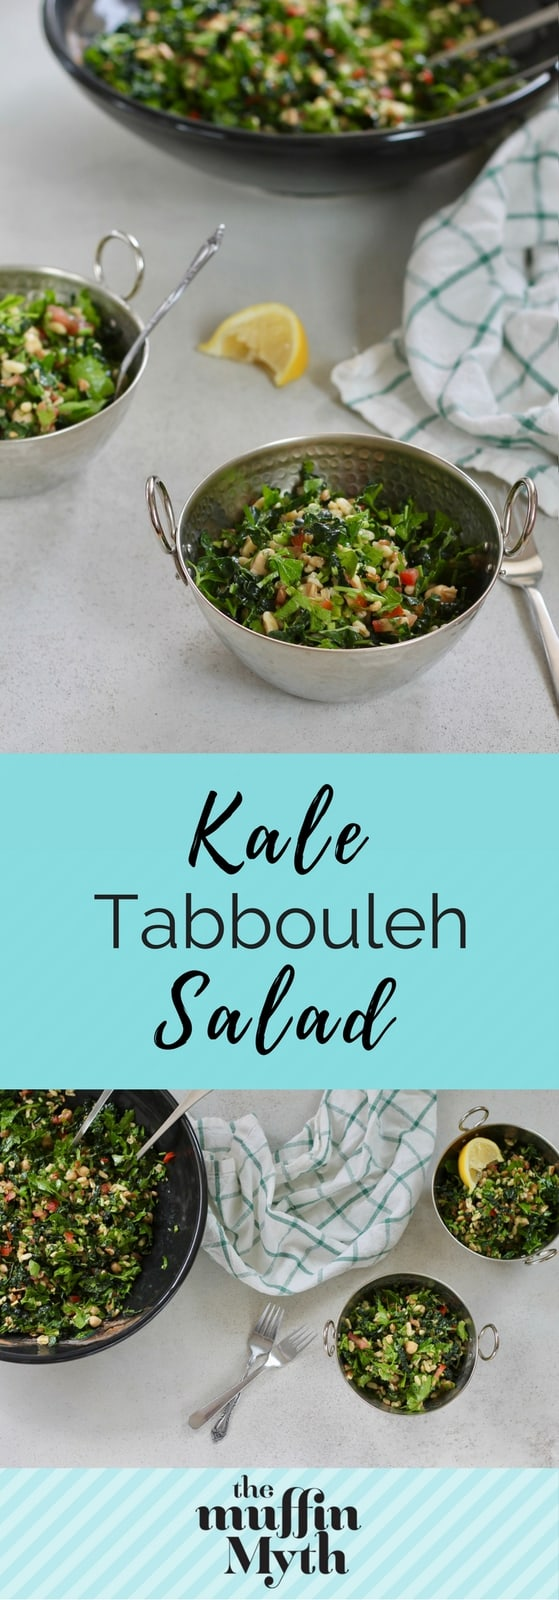 This Kale Tabbouleh Salad is a totally untraditional riff on tabbouleh, plumped up with kale, chickpeas, and kamut for a hearty and filling salad // www.heynutritionlady.com